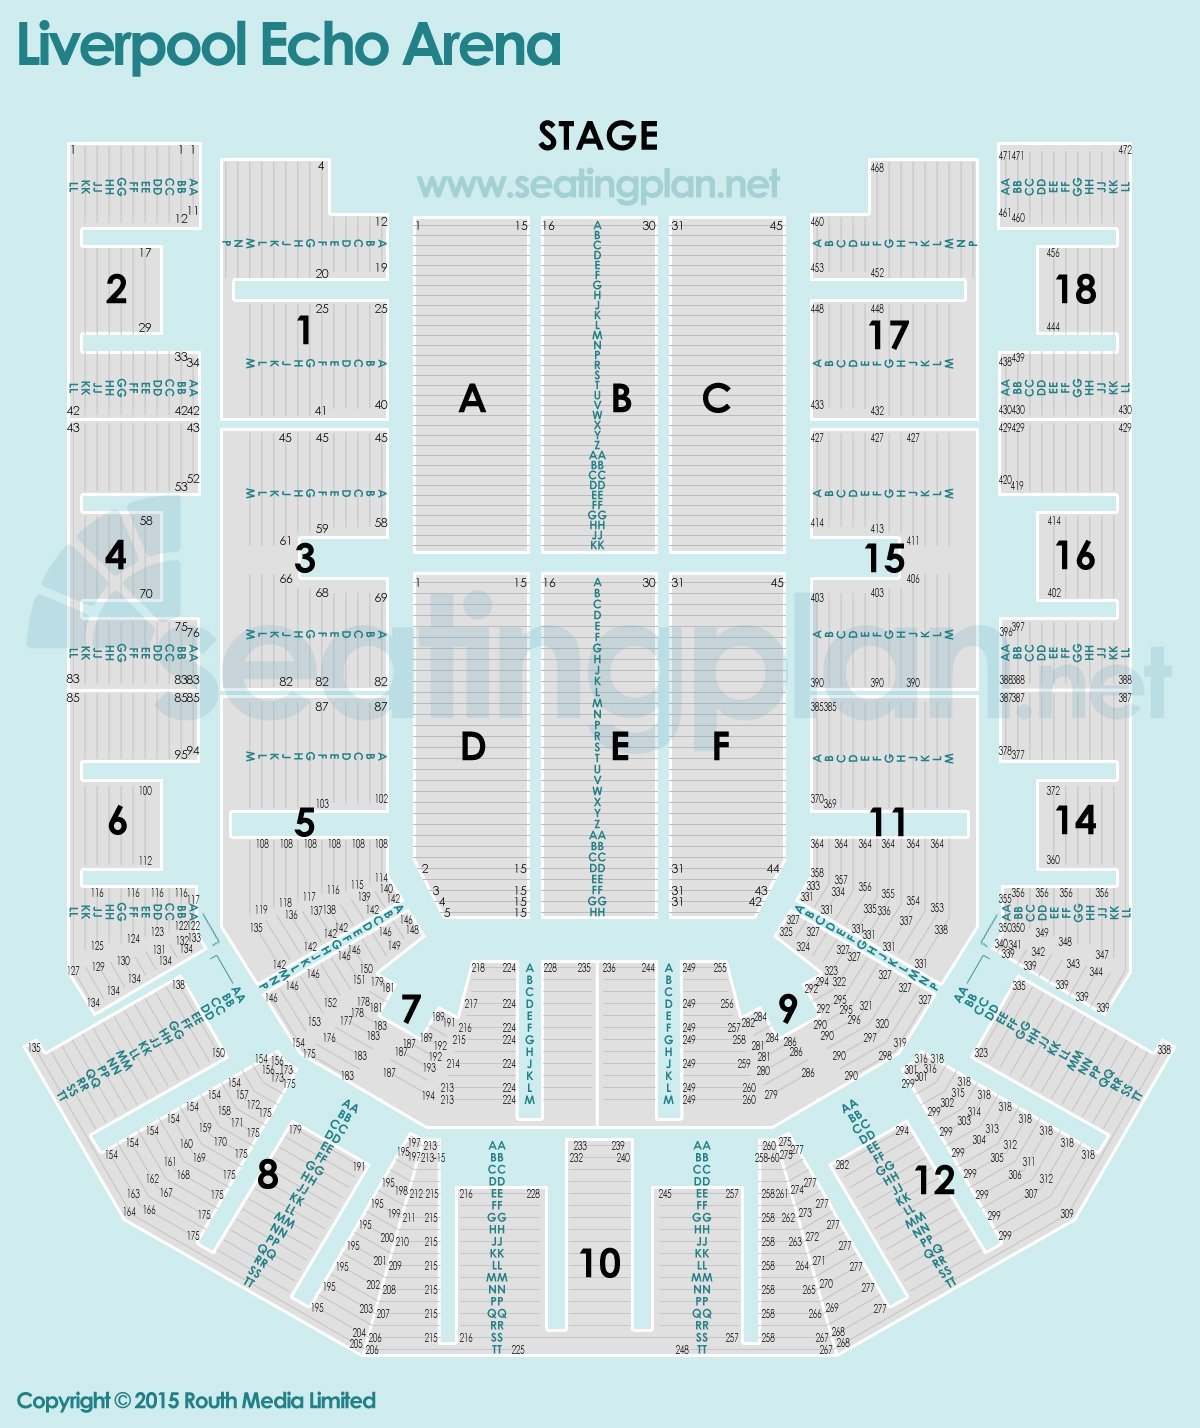 Metro Radio Arena Floor Plan Liverpool Echo Arena Seat Numbers Detailed Seating Plan